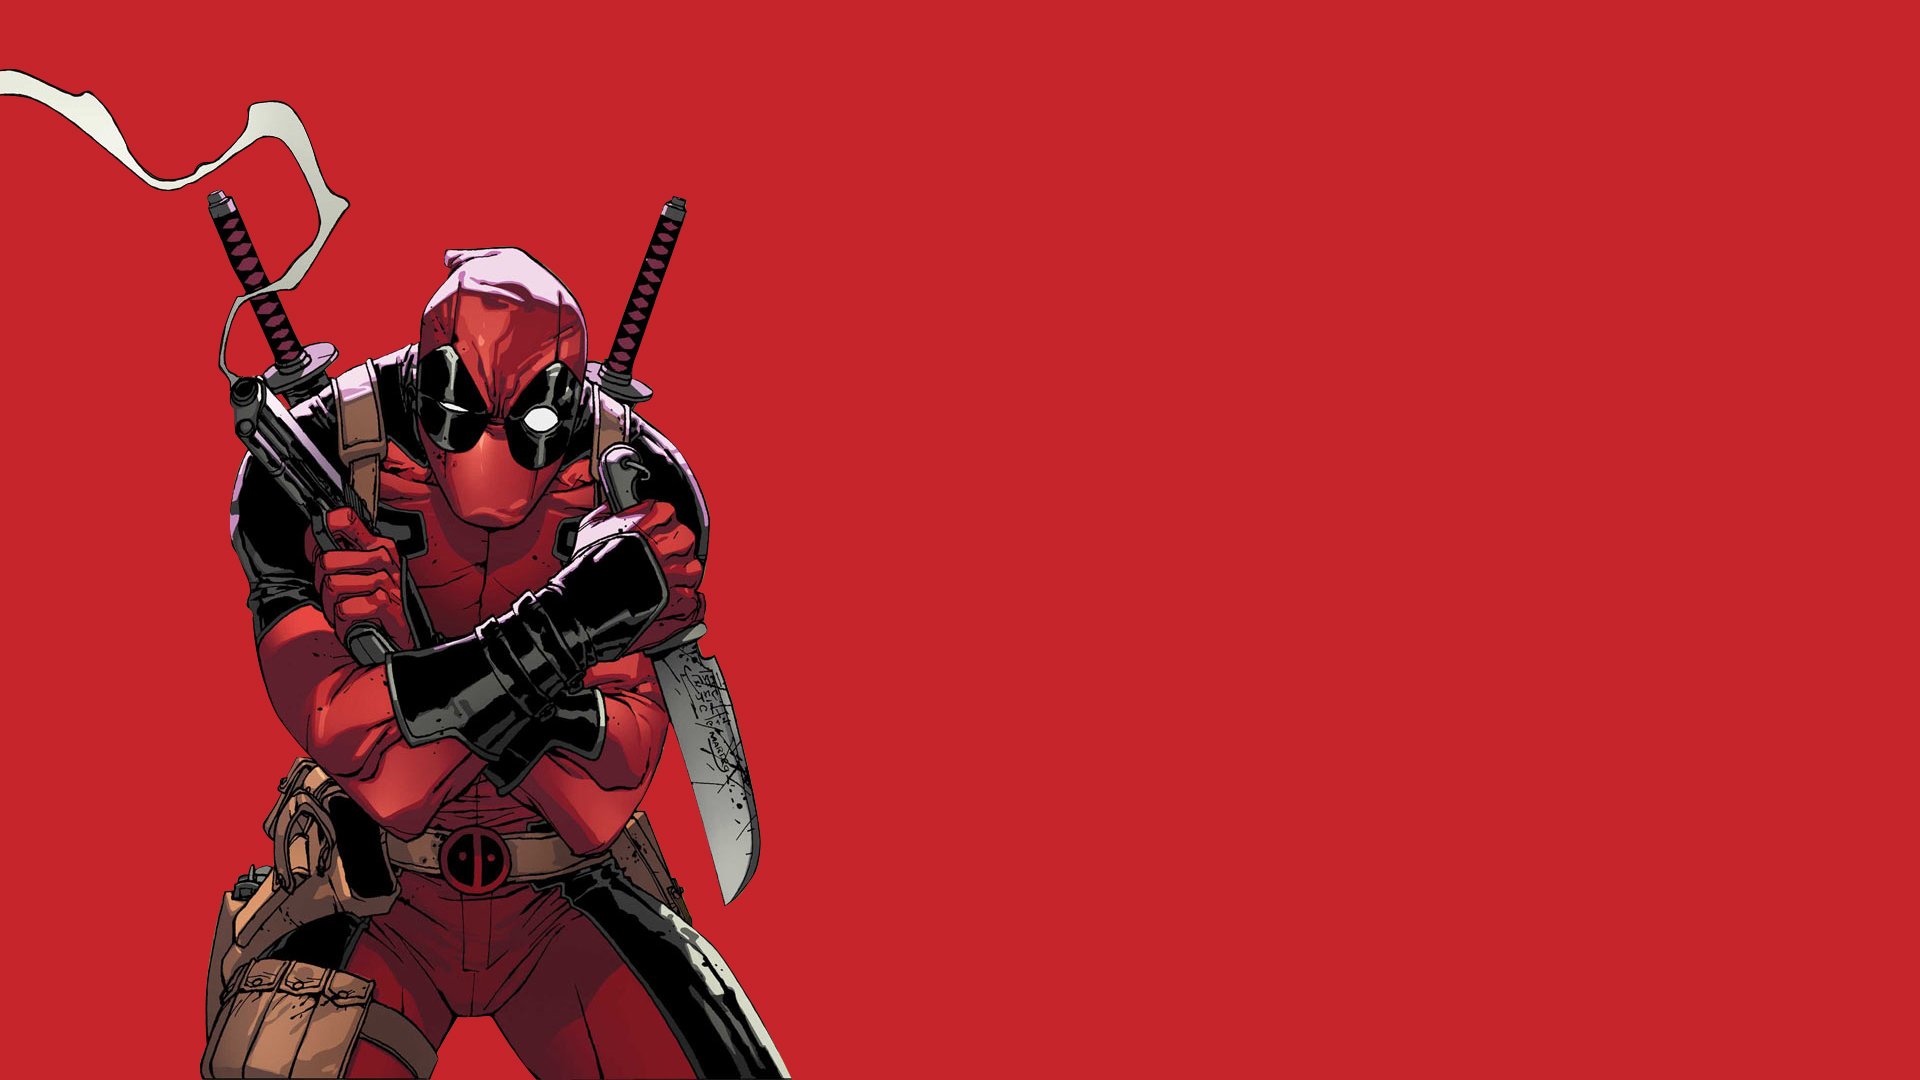 Deadpool wallpapers pictures images for Deadpool wallpaper 1920x1080